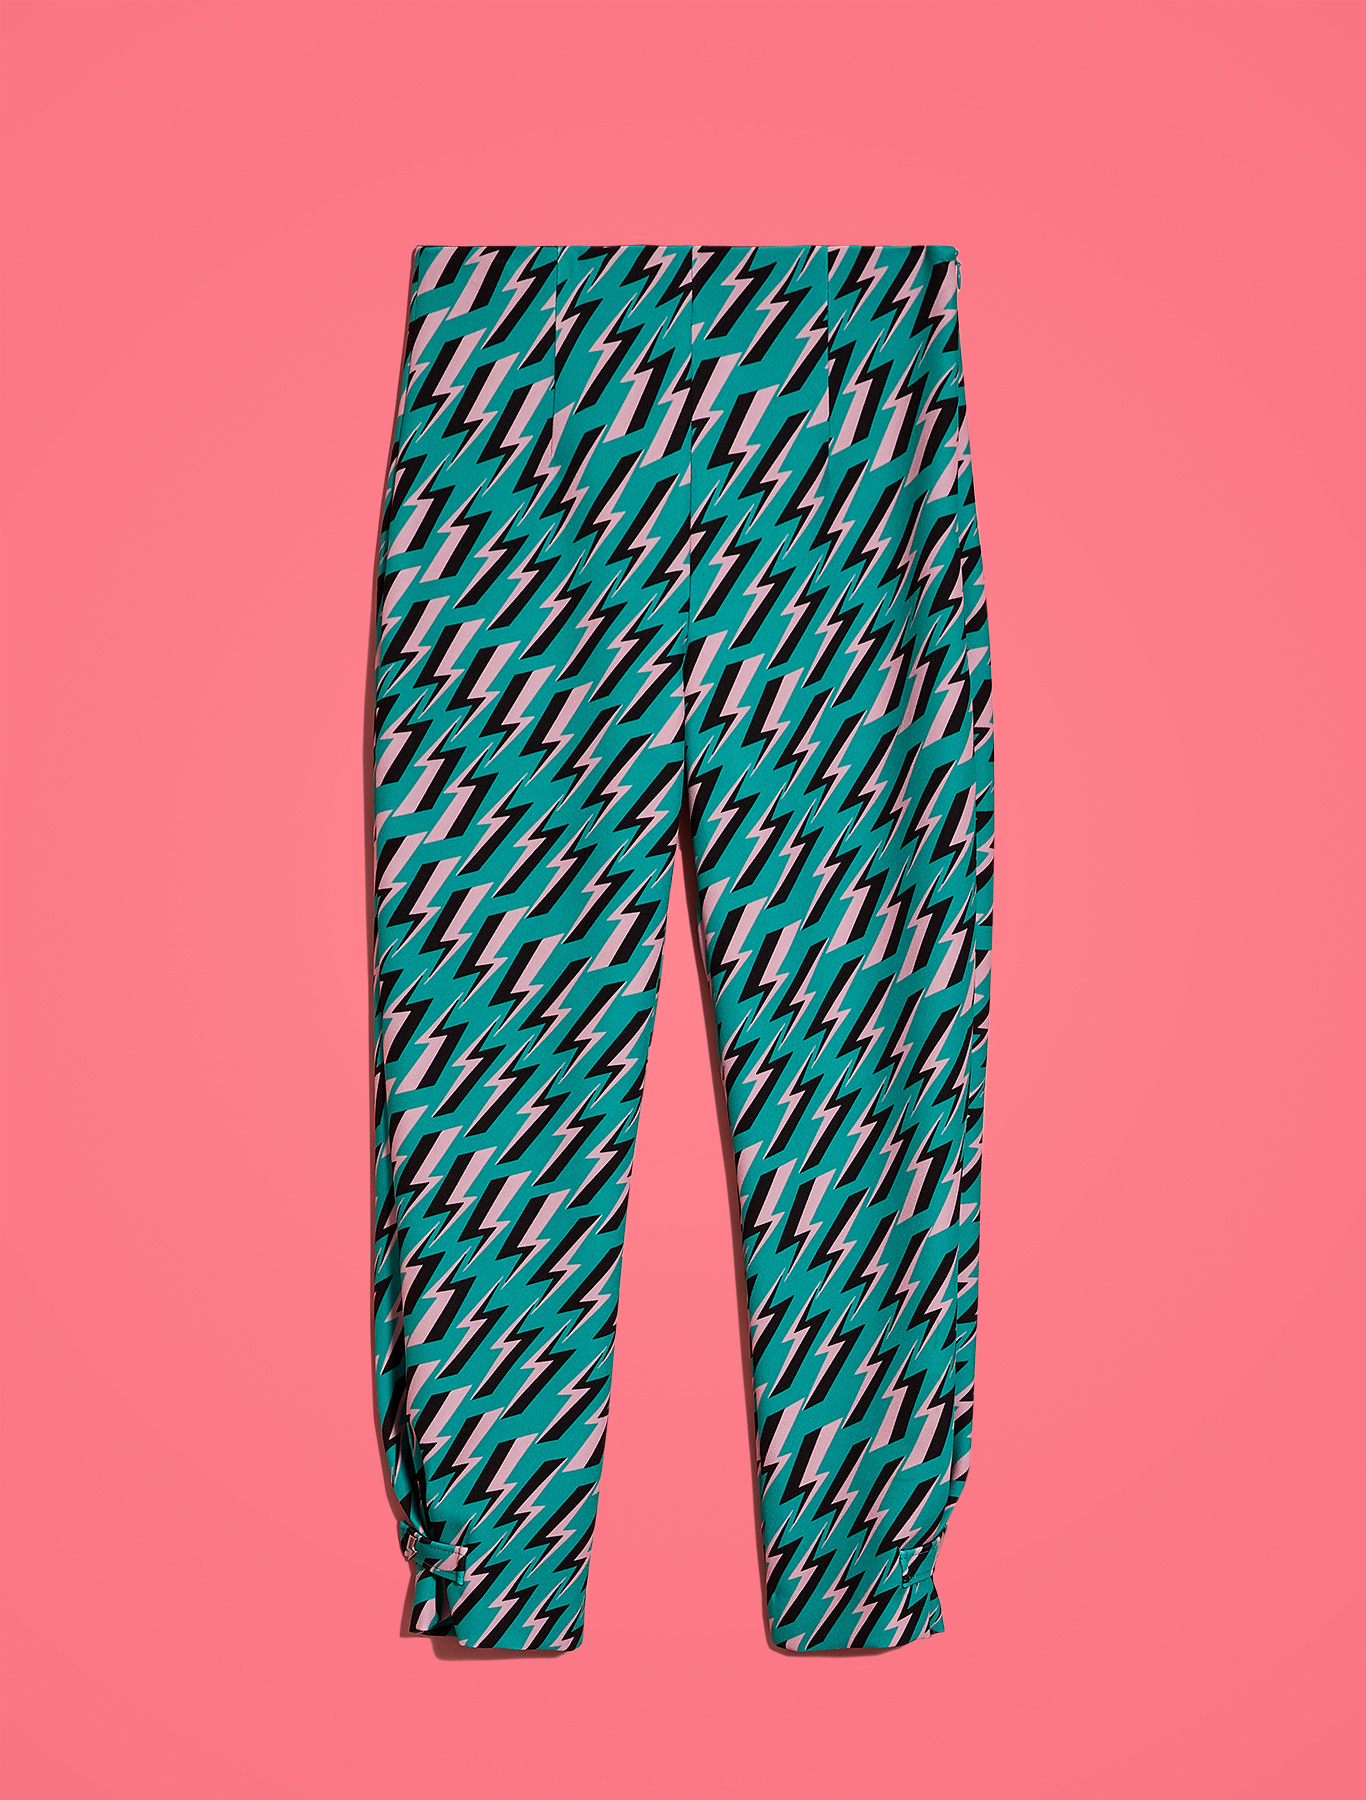 Electric Feel by Spiros Halaris slim-fit trousers - green pattern - pennyblack